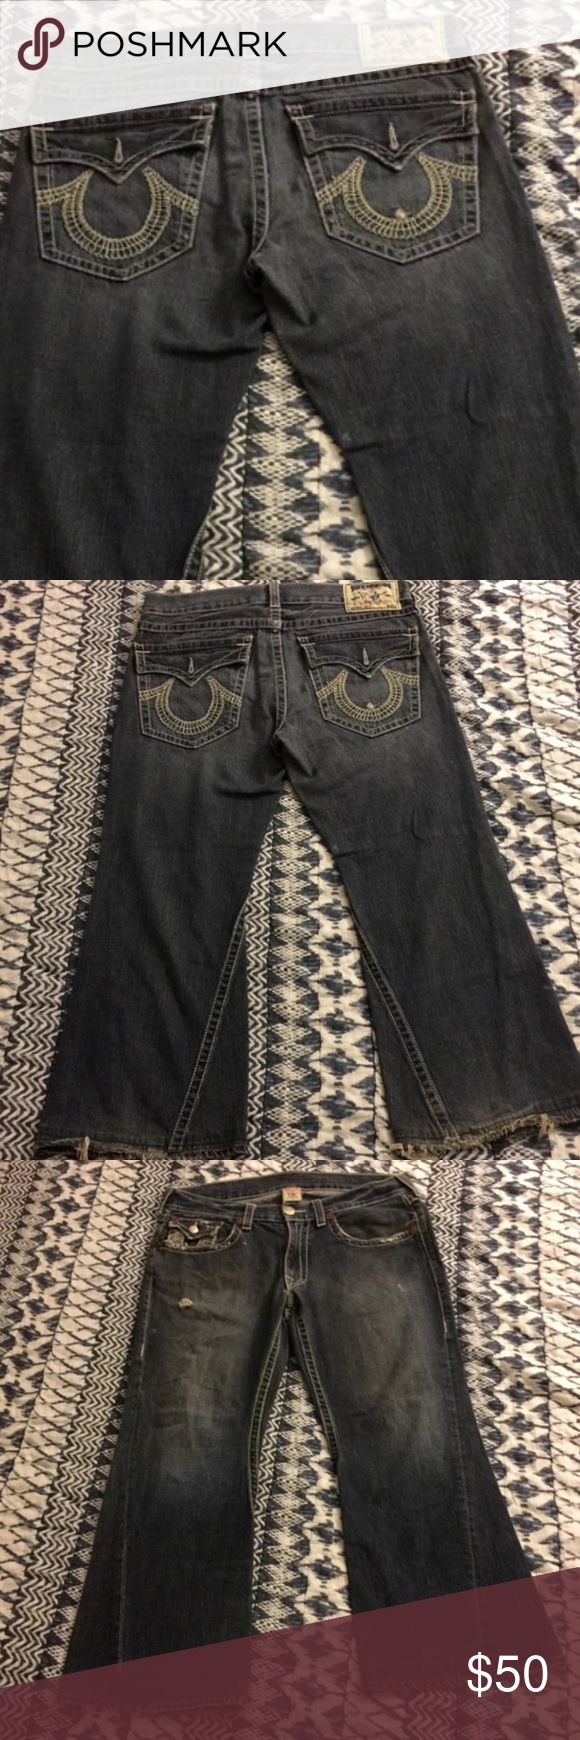 💝 True Religion JOEY Light Wash Distressed Jeans True Religion Distressed Jeans - Men's 36 Can Also Be Worn By Women. These Are In Excellent Condition!! Distressed Look And Light Wash. Seat 34. 🚫No Trades 🎉 I'm Always Willing To Consider Any Reasonable Offers Through The Offer Button Only Please And Don't Forget To Bundle And Save!! True Religion Jeans